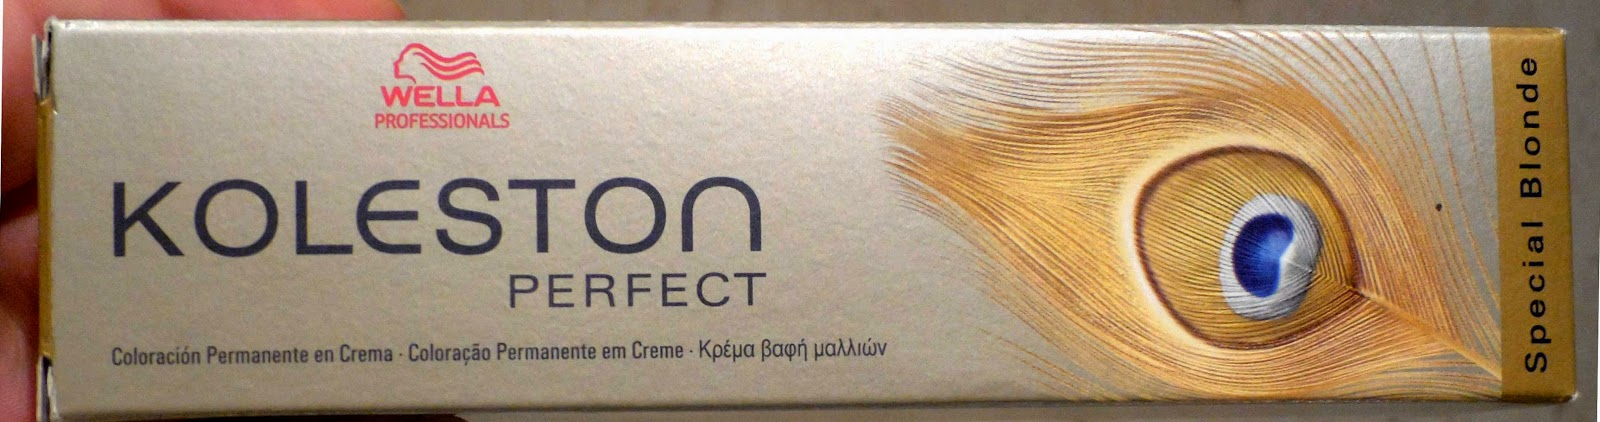 Wella Koleston Perfect 12/96 Super aclarante rubio ceniza violeta